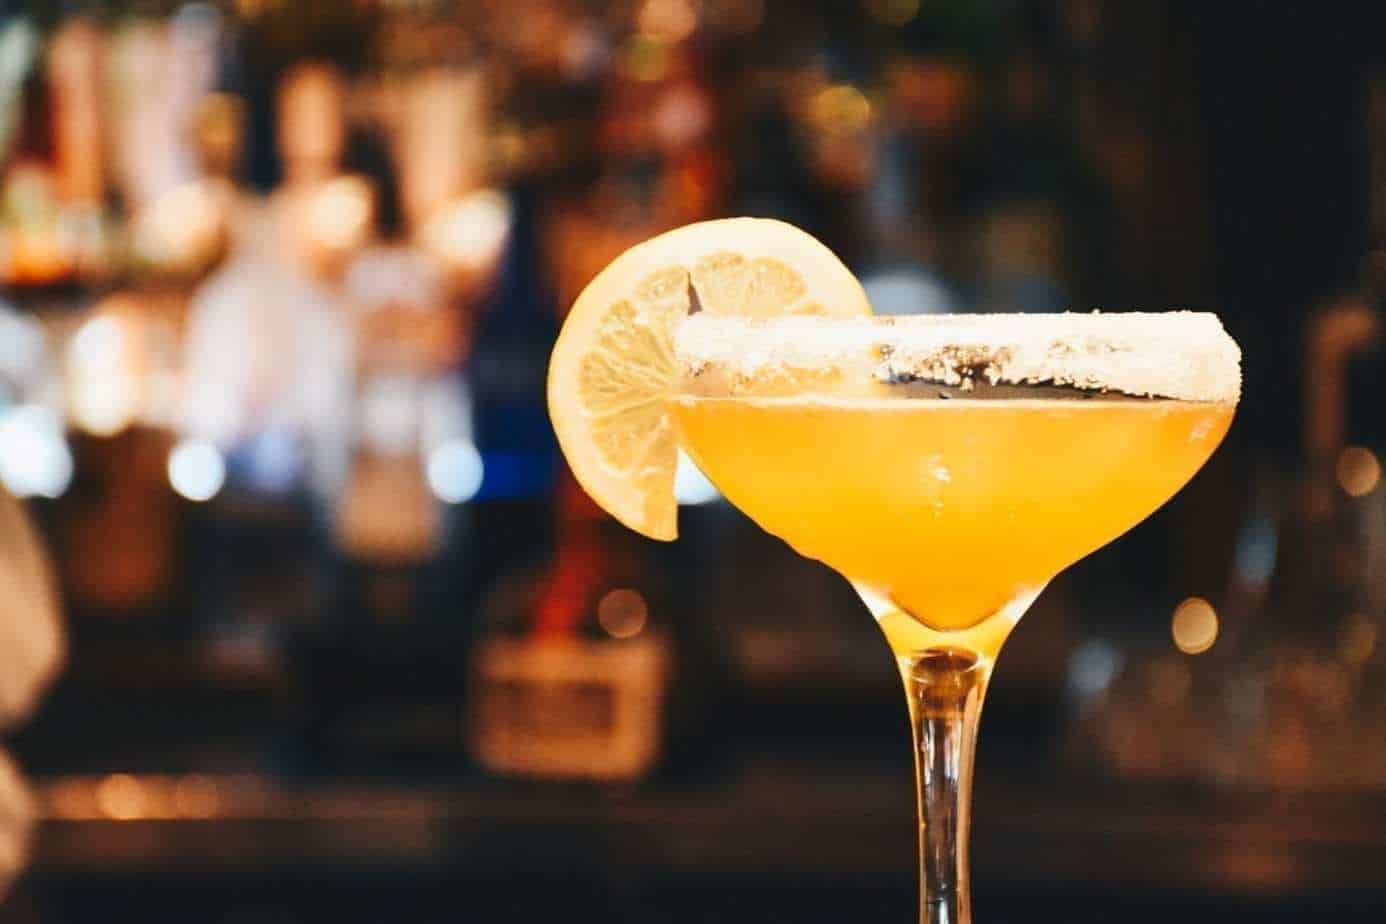 Damian's Cucina Italiana launches new Aperitif menu for First time in 34 years